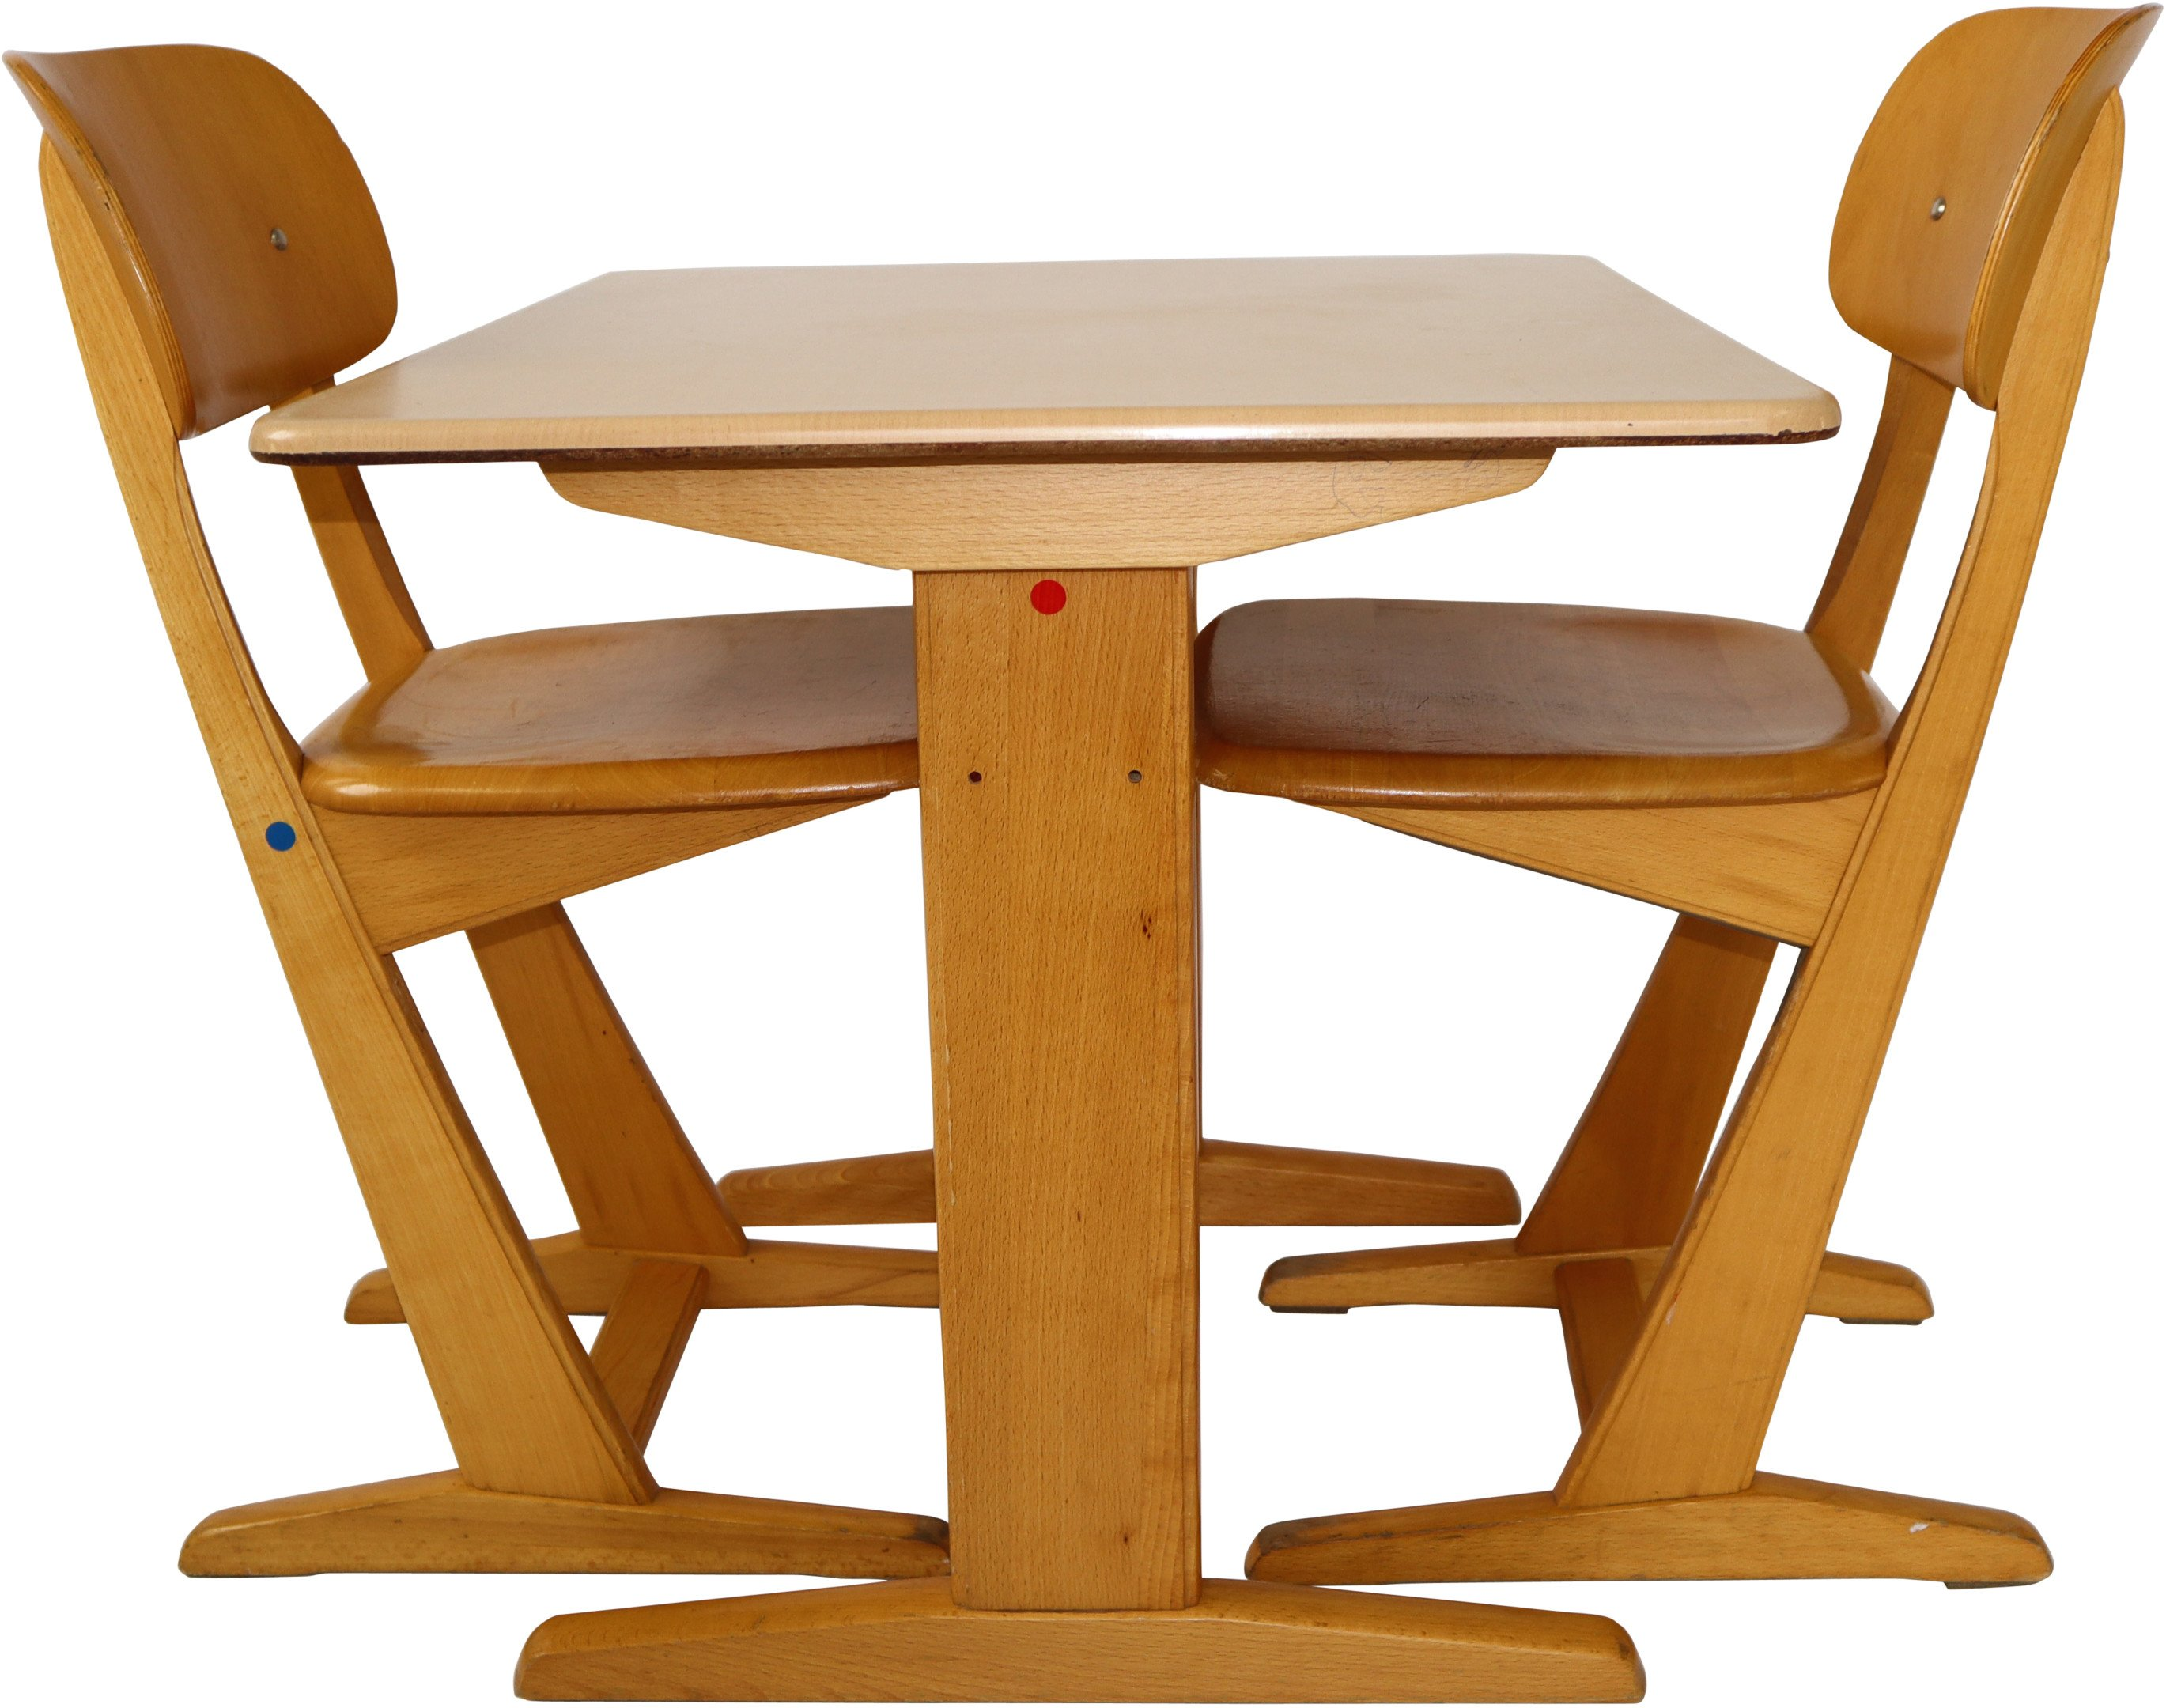 Children's School Desk with Two Chairs, 1970s